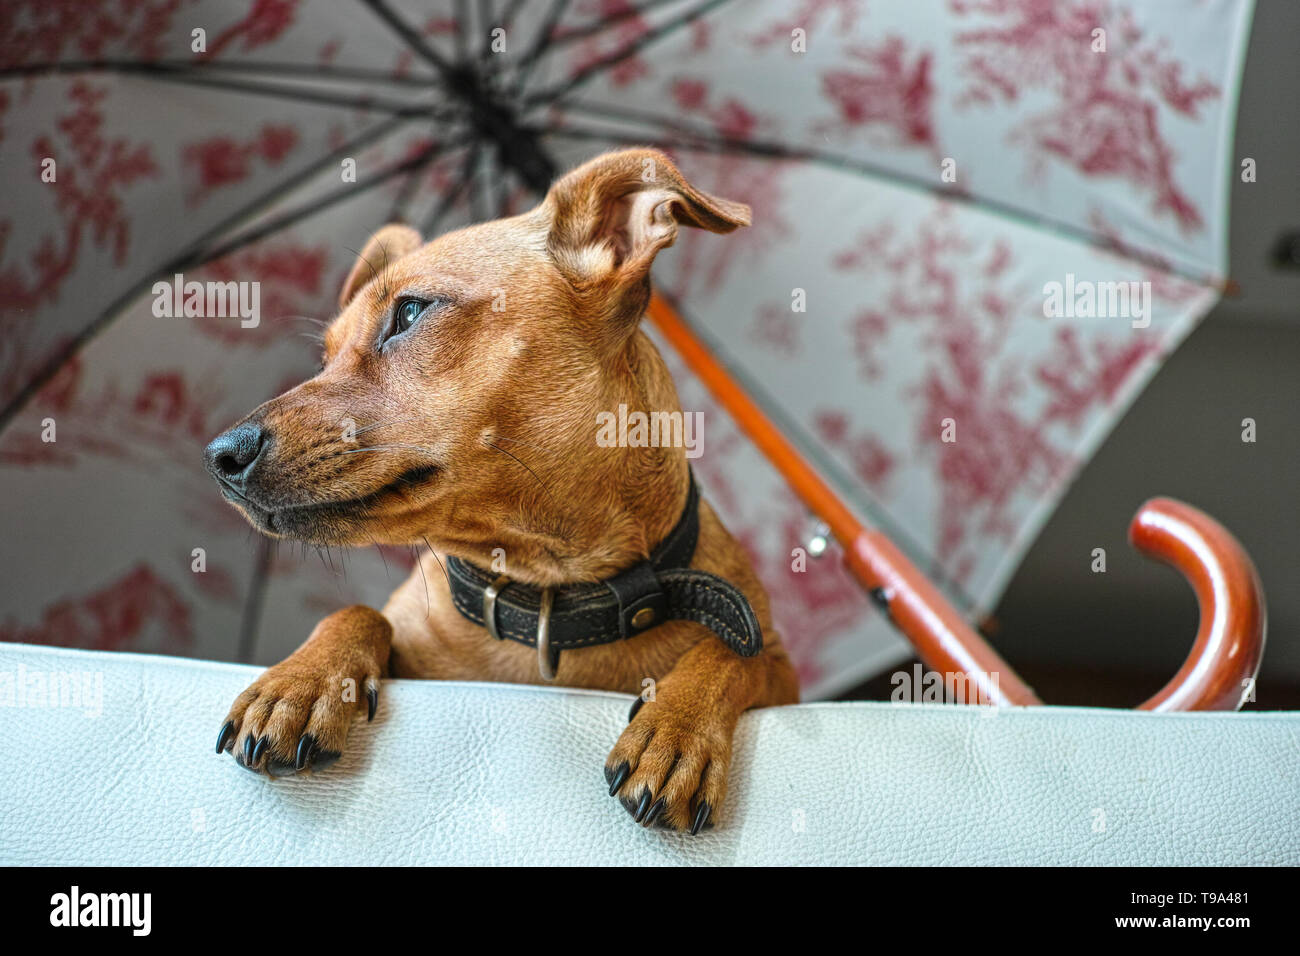 Miniature Pinscher dog waiting her owner on the sofa, viewed from below - Stock Image